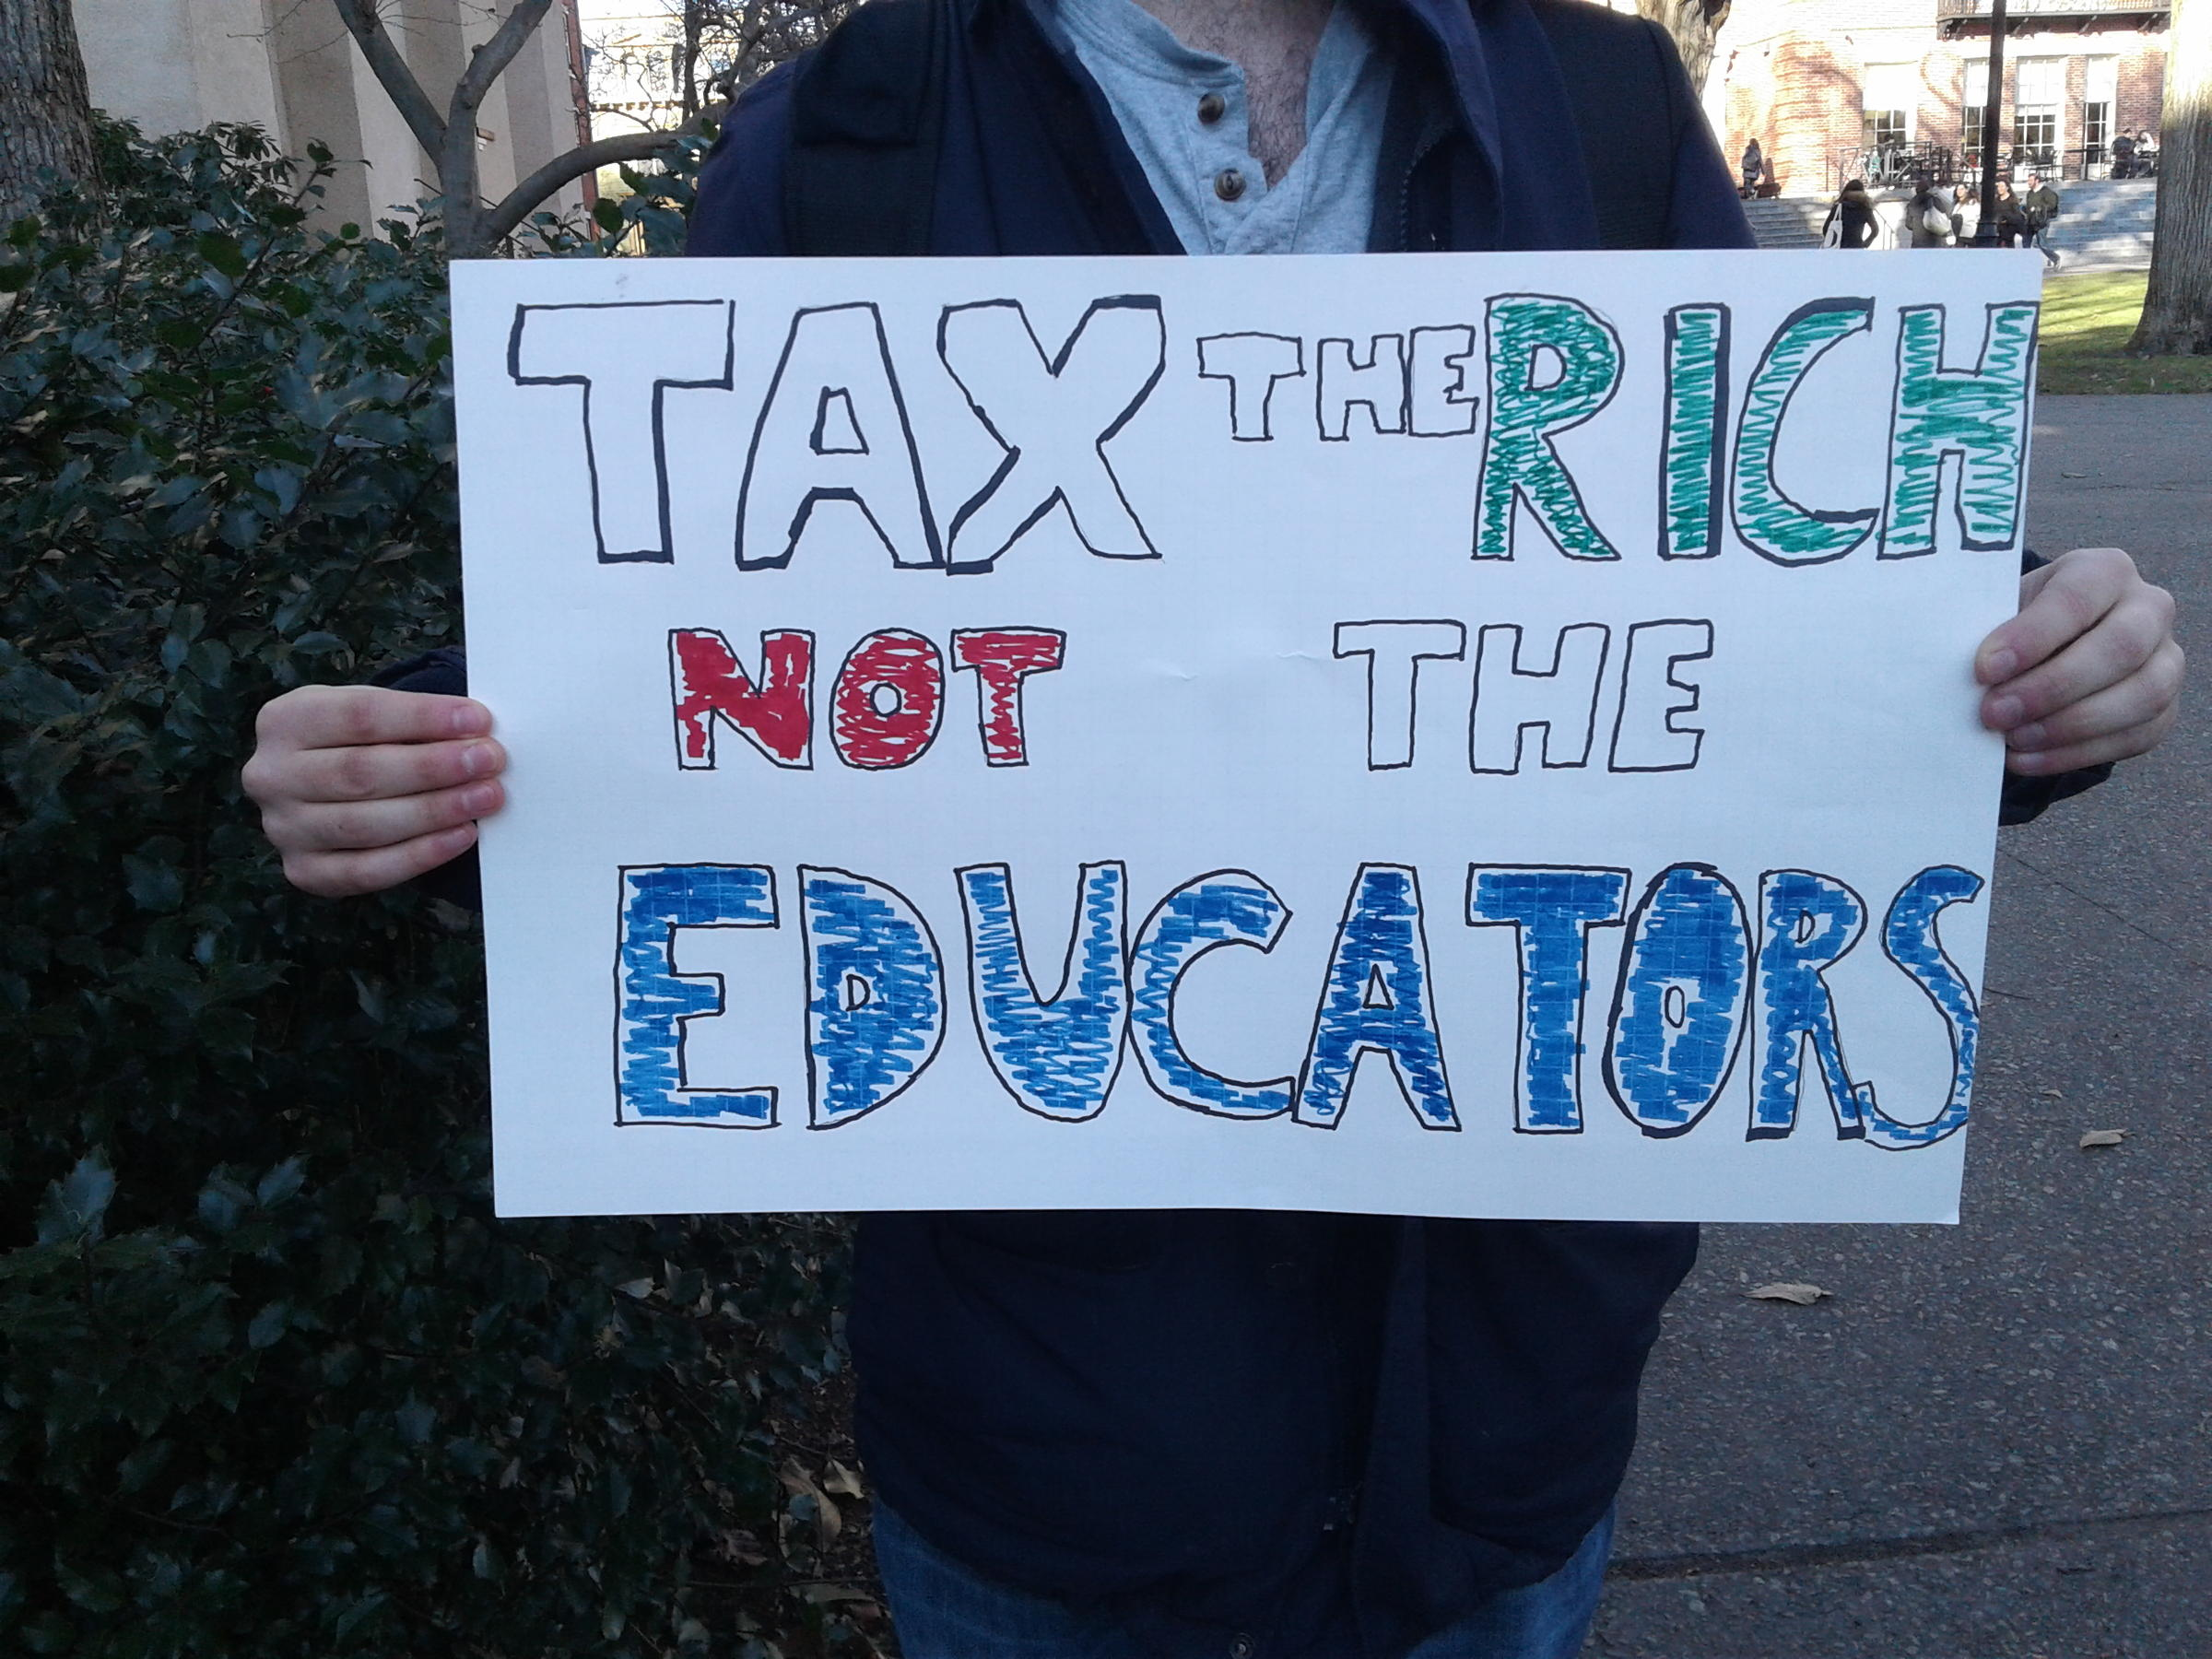 I may have to drop out: Graduate students take on tax bill